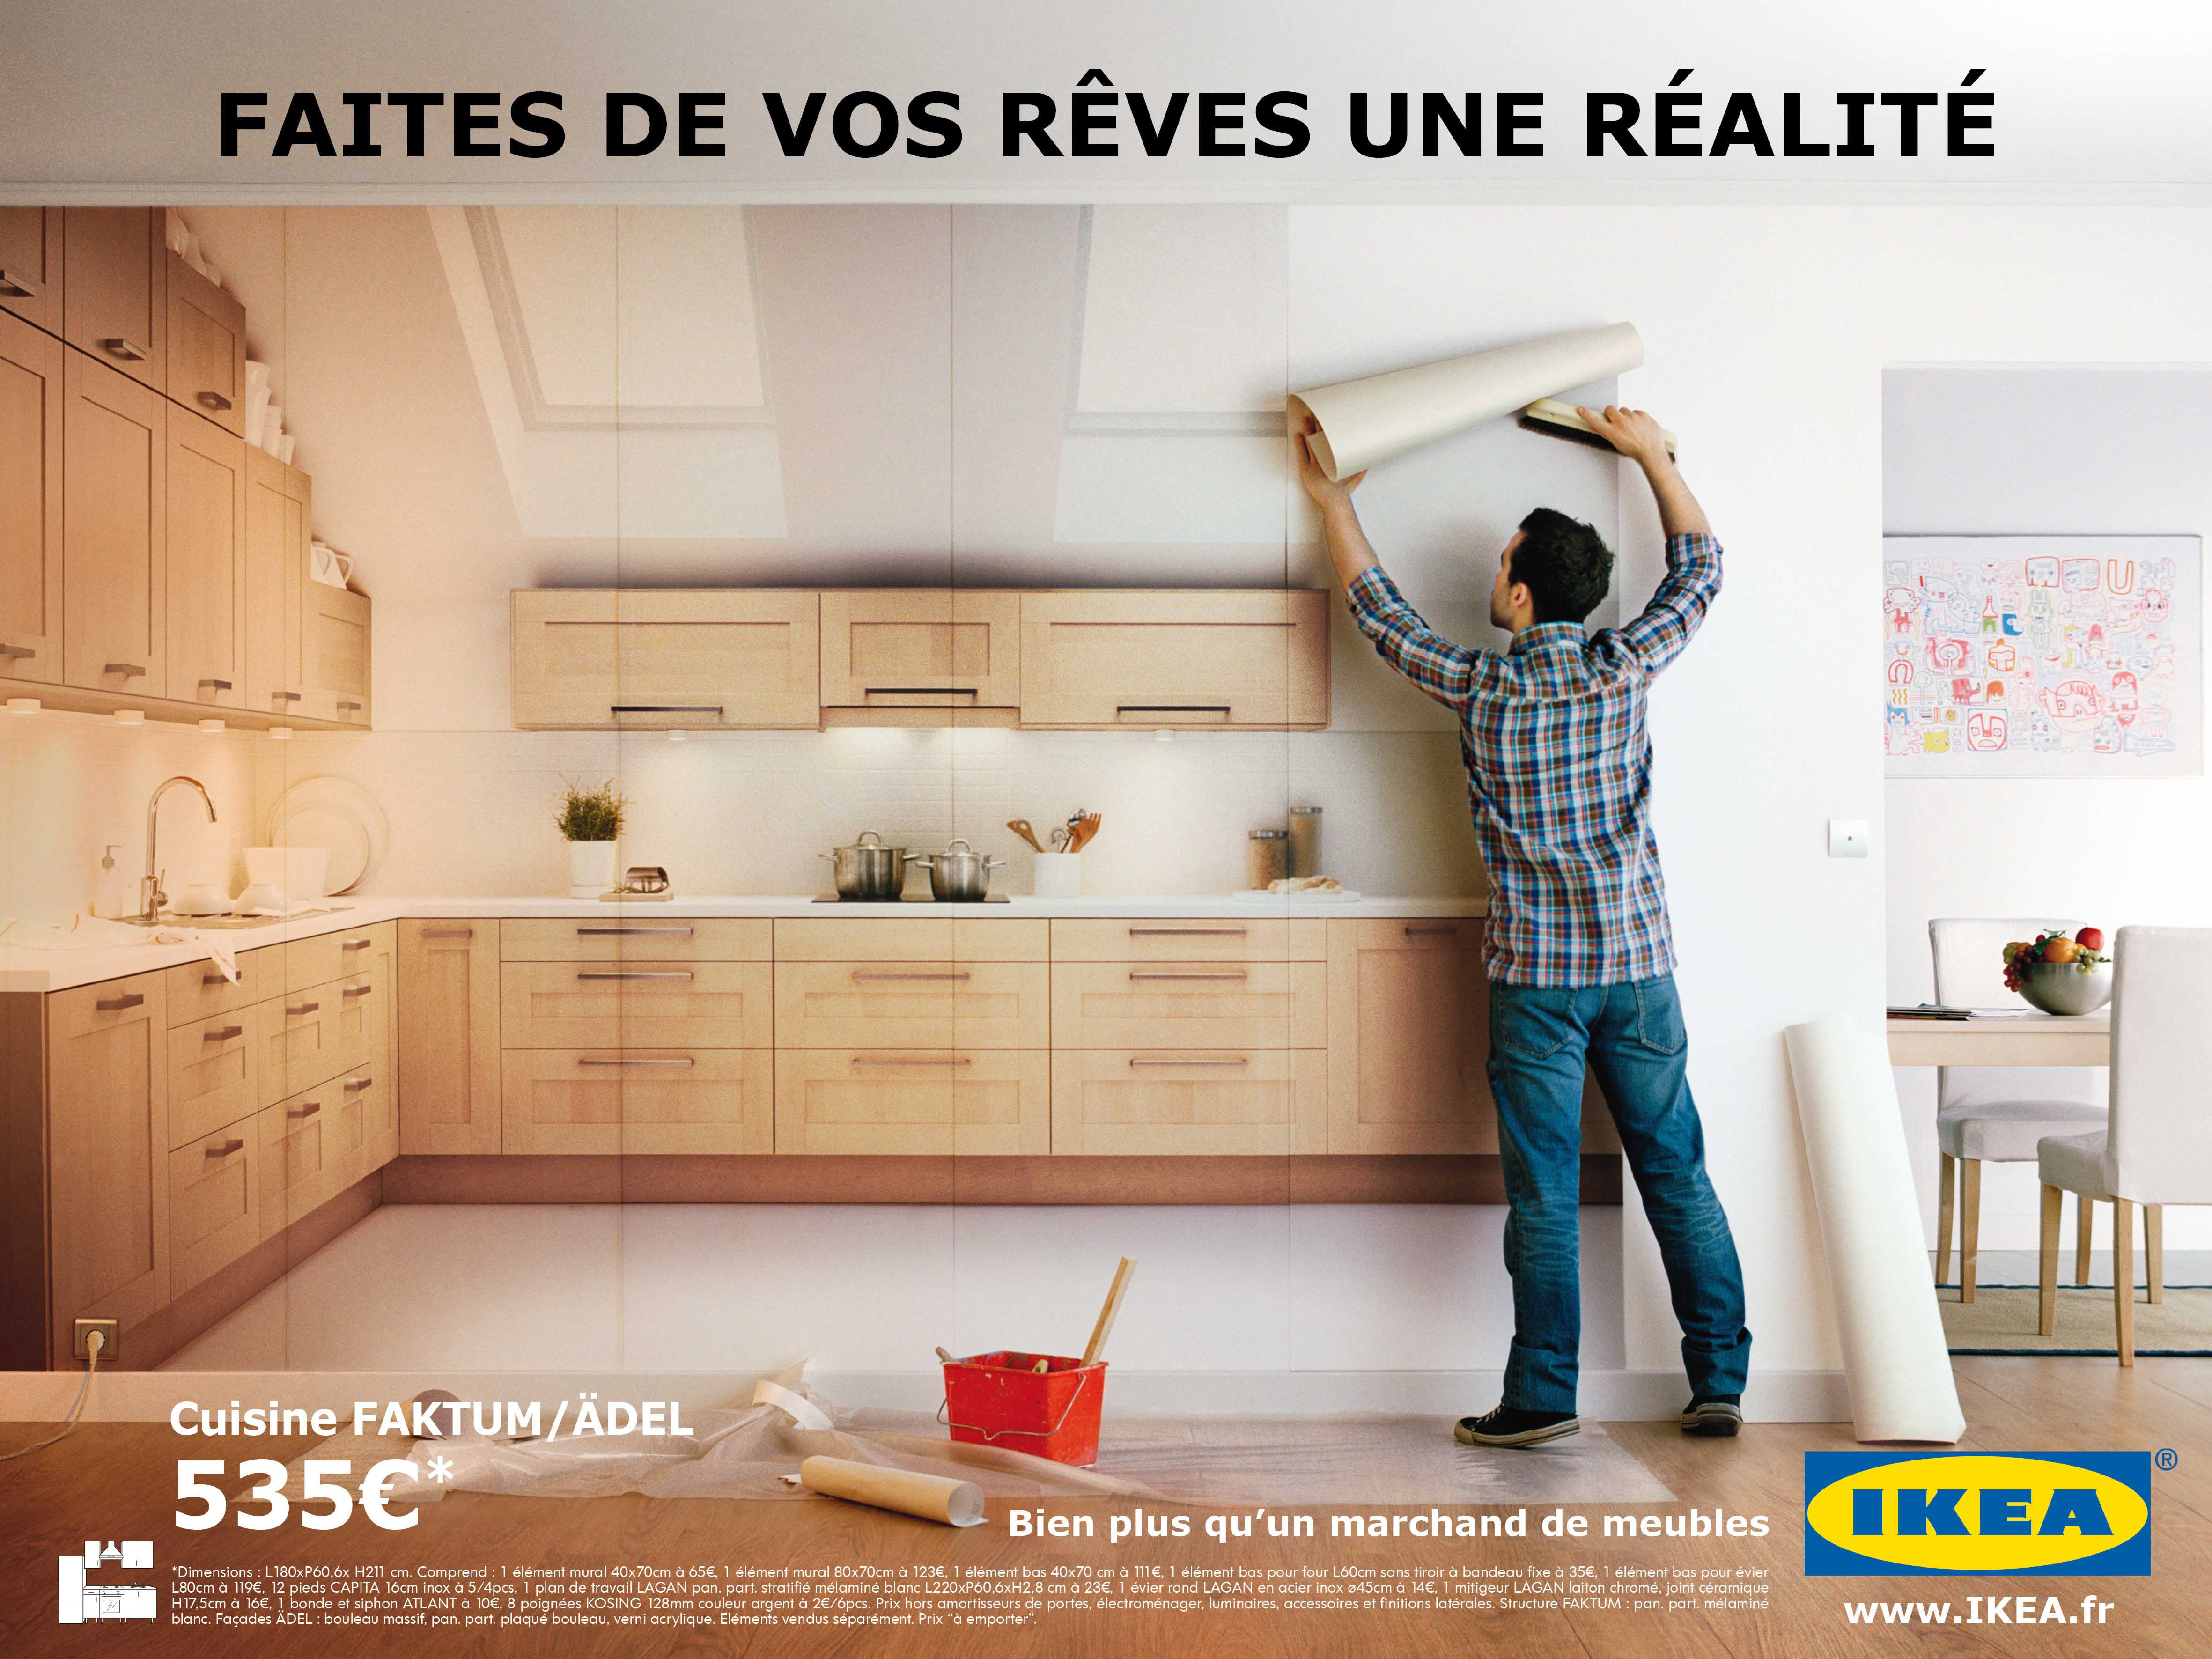 ikea meubles de cuisine faites de vos r ves une r alit avril 2010 strat gies. Black Bedroom Furniture Sets. Home Design Ideas